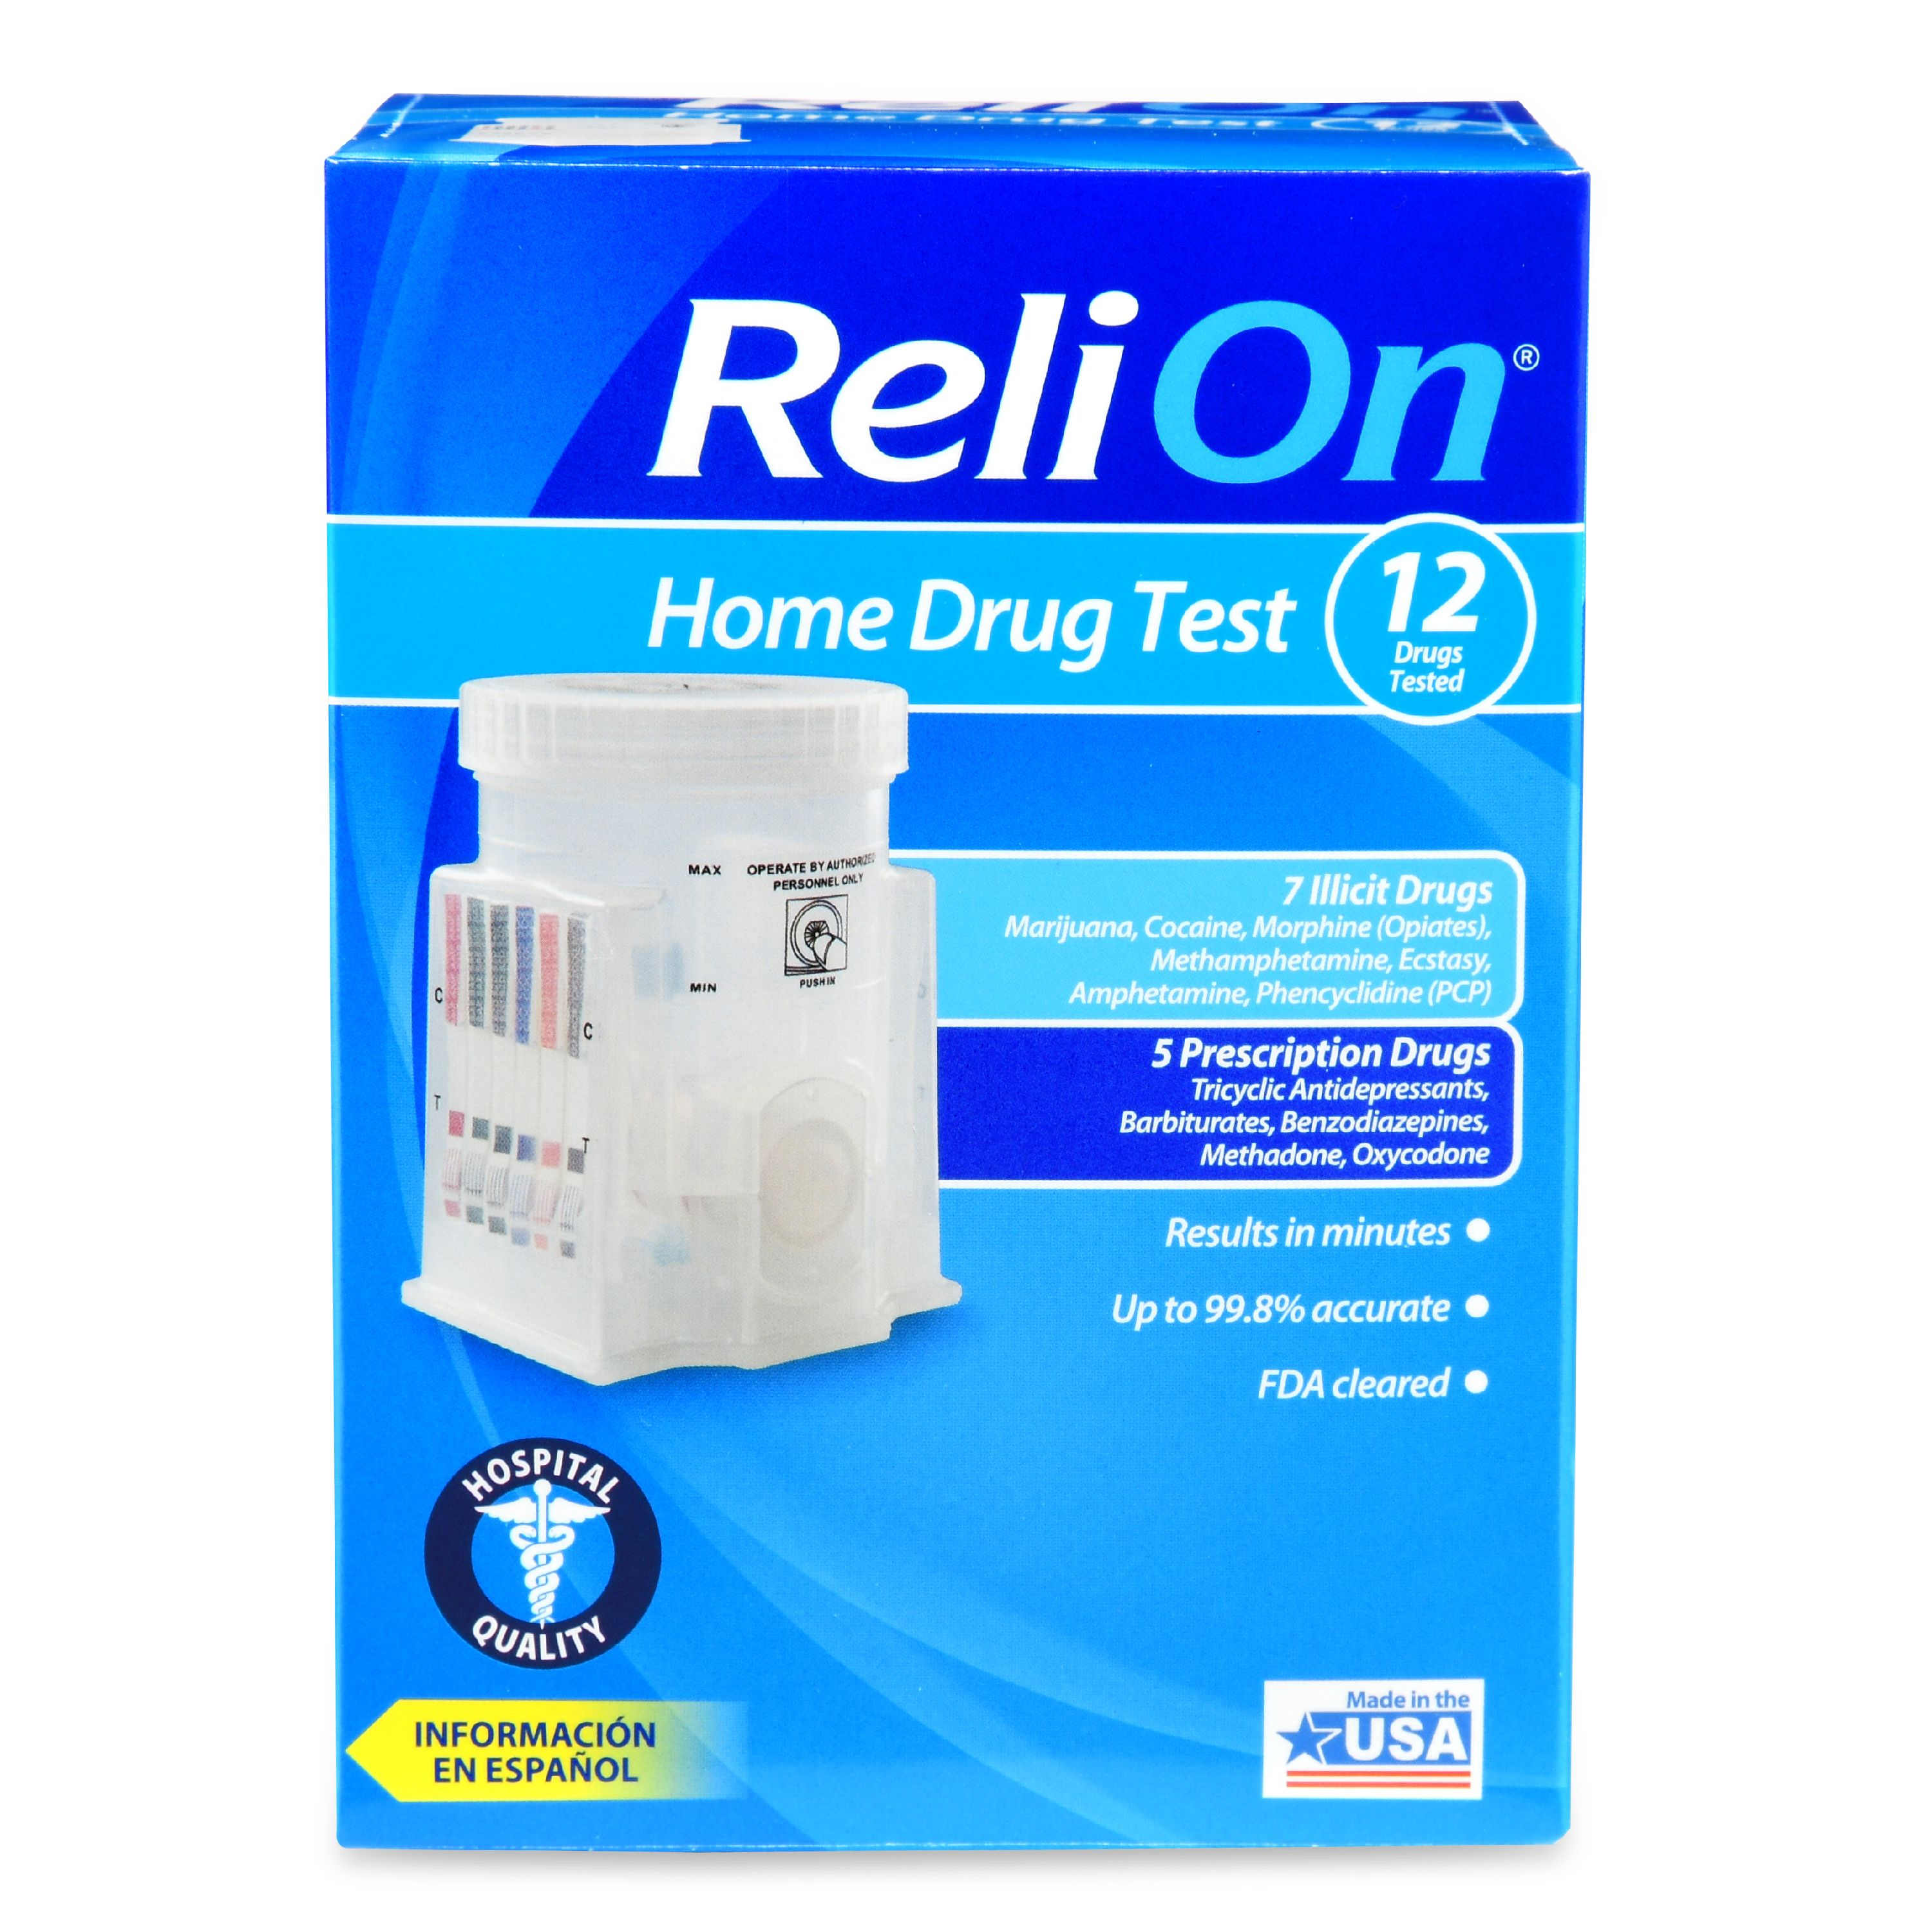 ReliOn Home Drug Test, 12 Drugs Tested